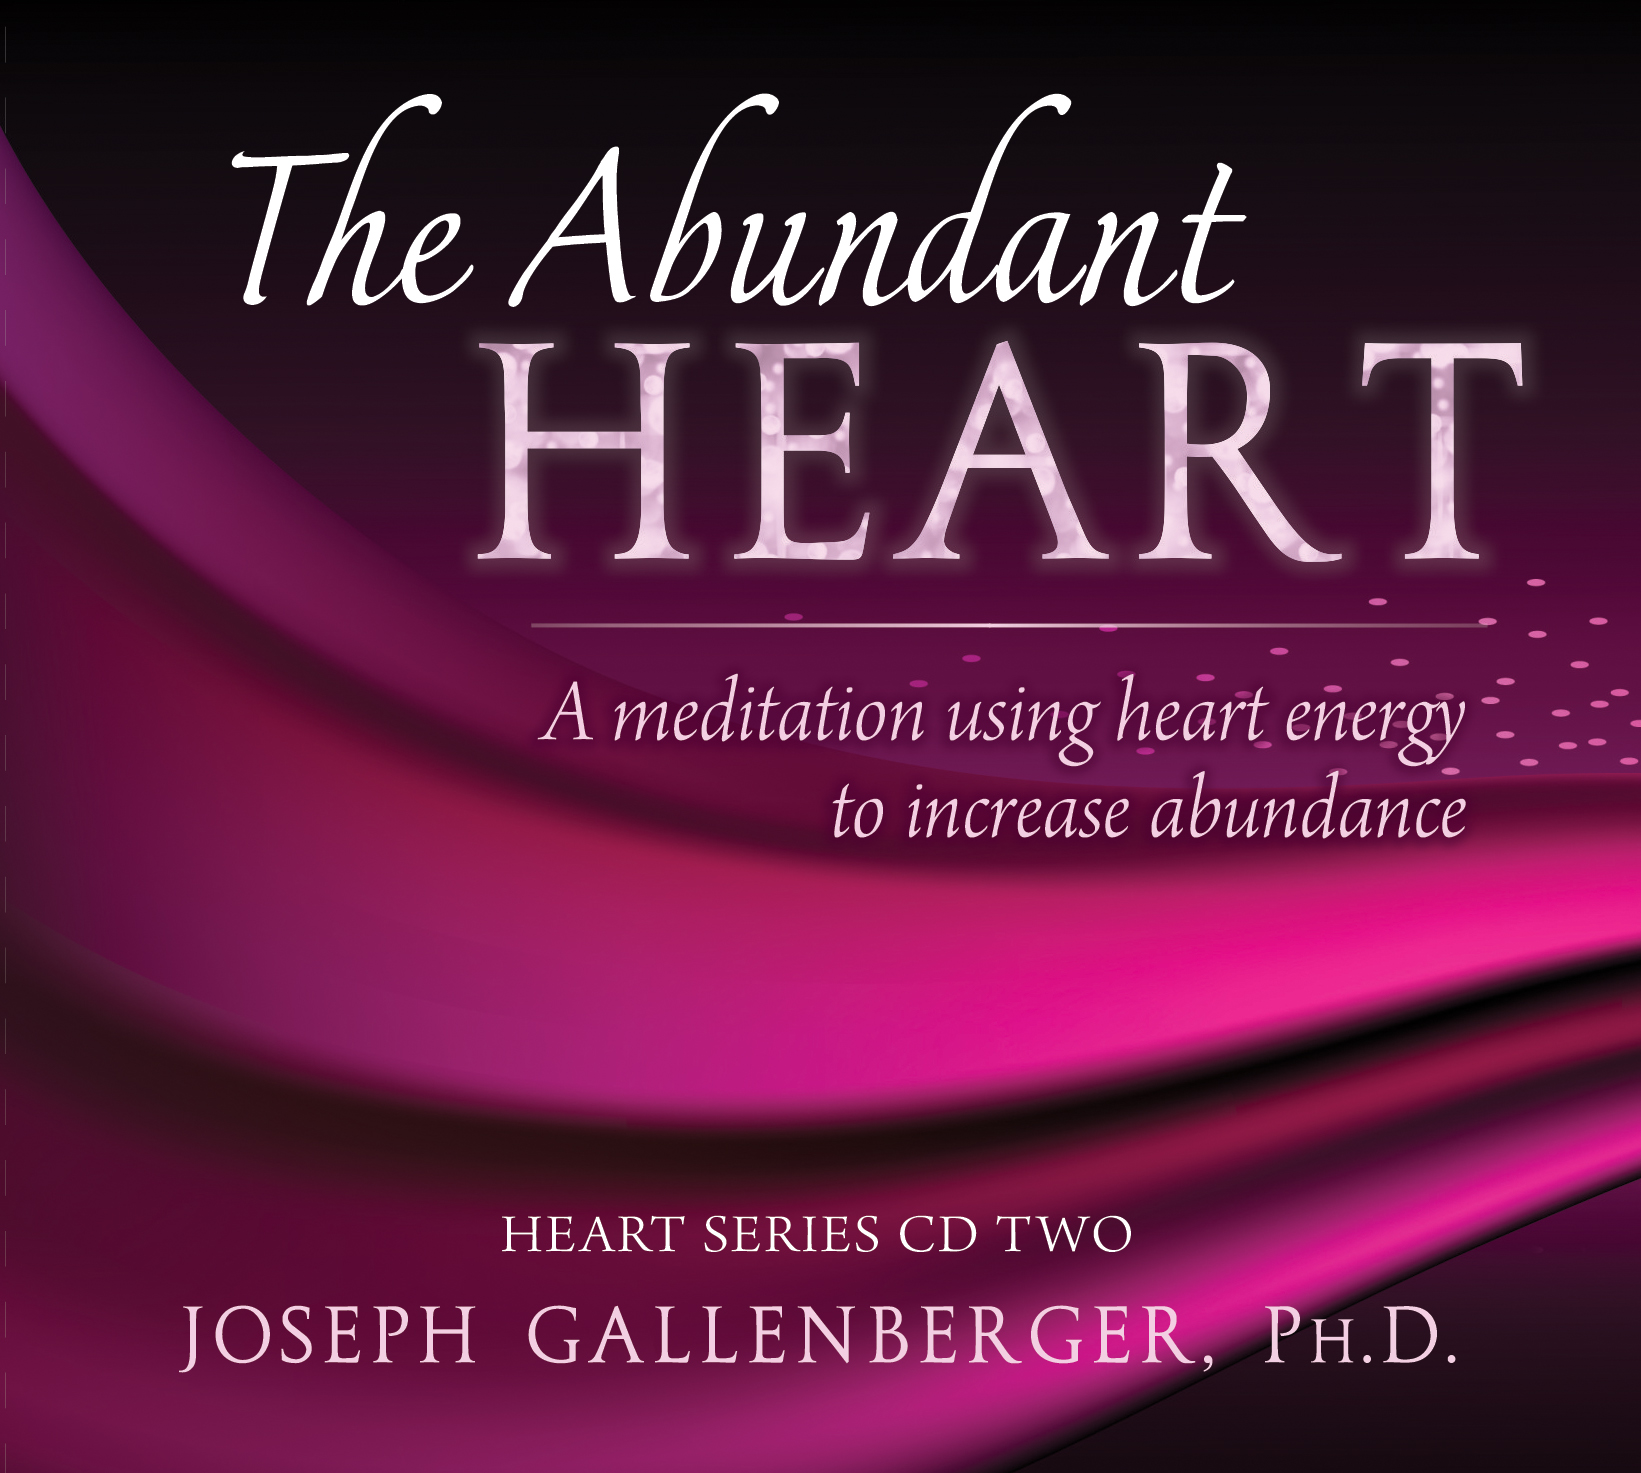 The Abundany Heart